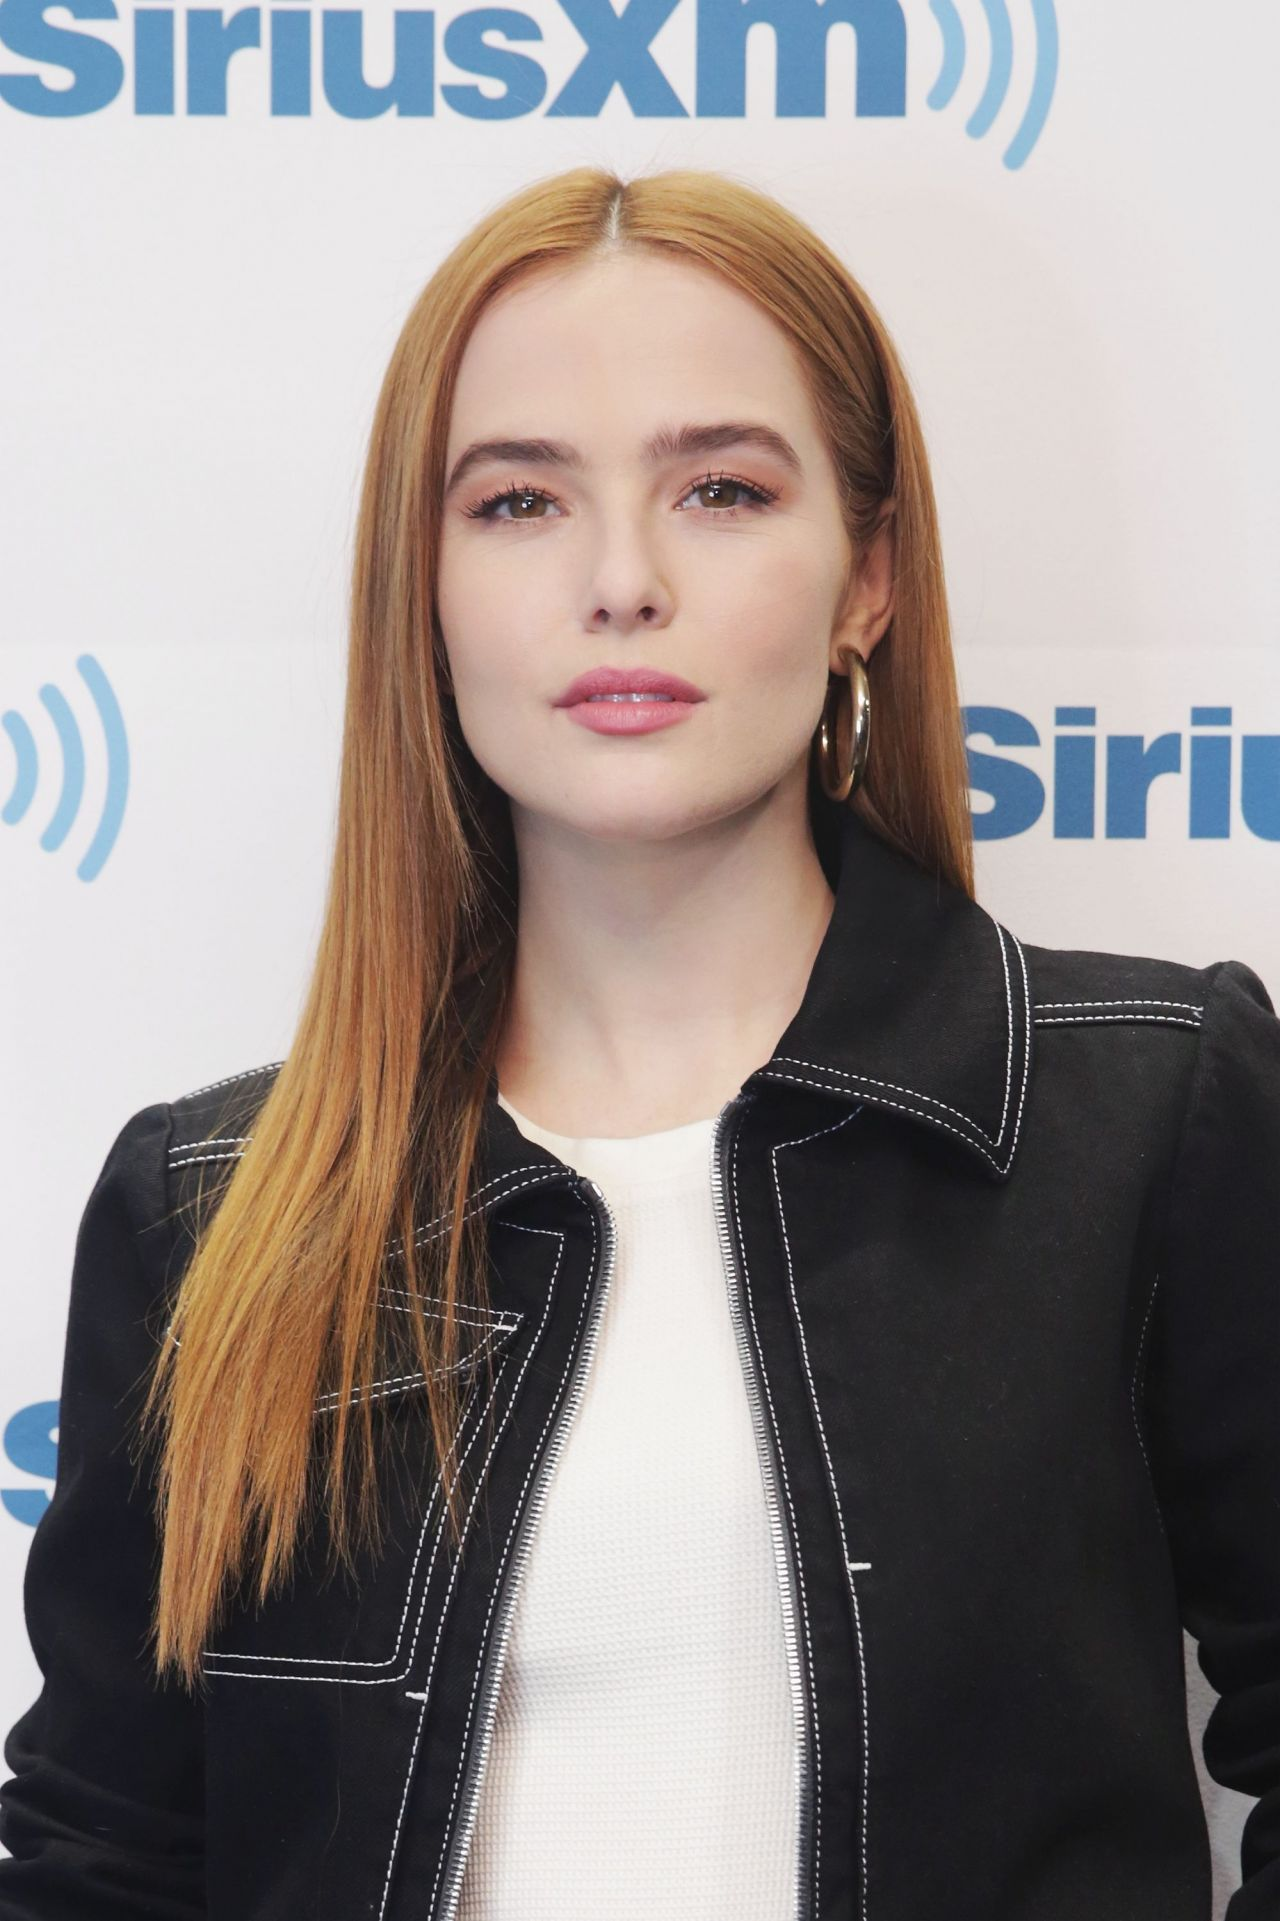 http://celebmafia.com/wp-content/uploads/2018/03/zoey-deutch-at-siriusxm-studios-in-nyc-03-20-2018-1.jpg